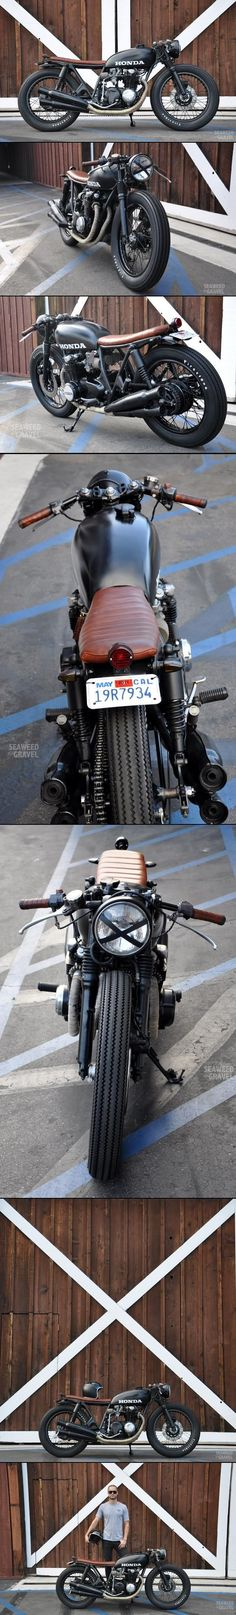 Awesome Cafe Racer